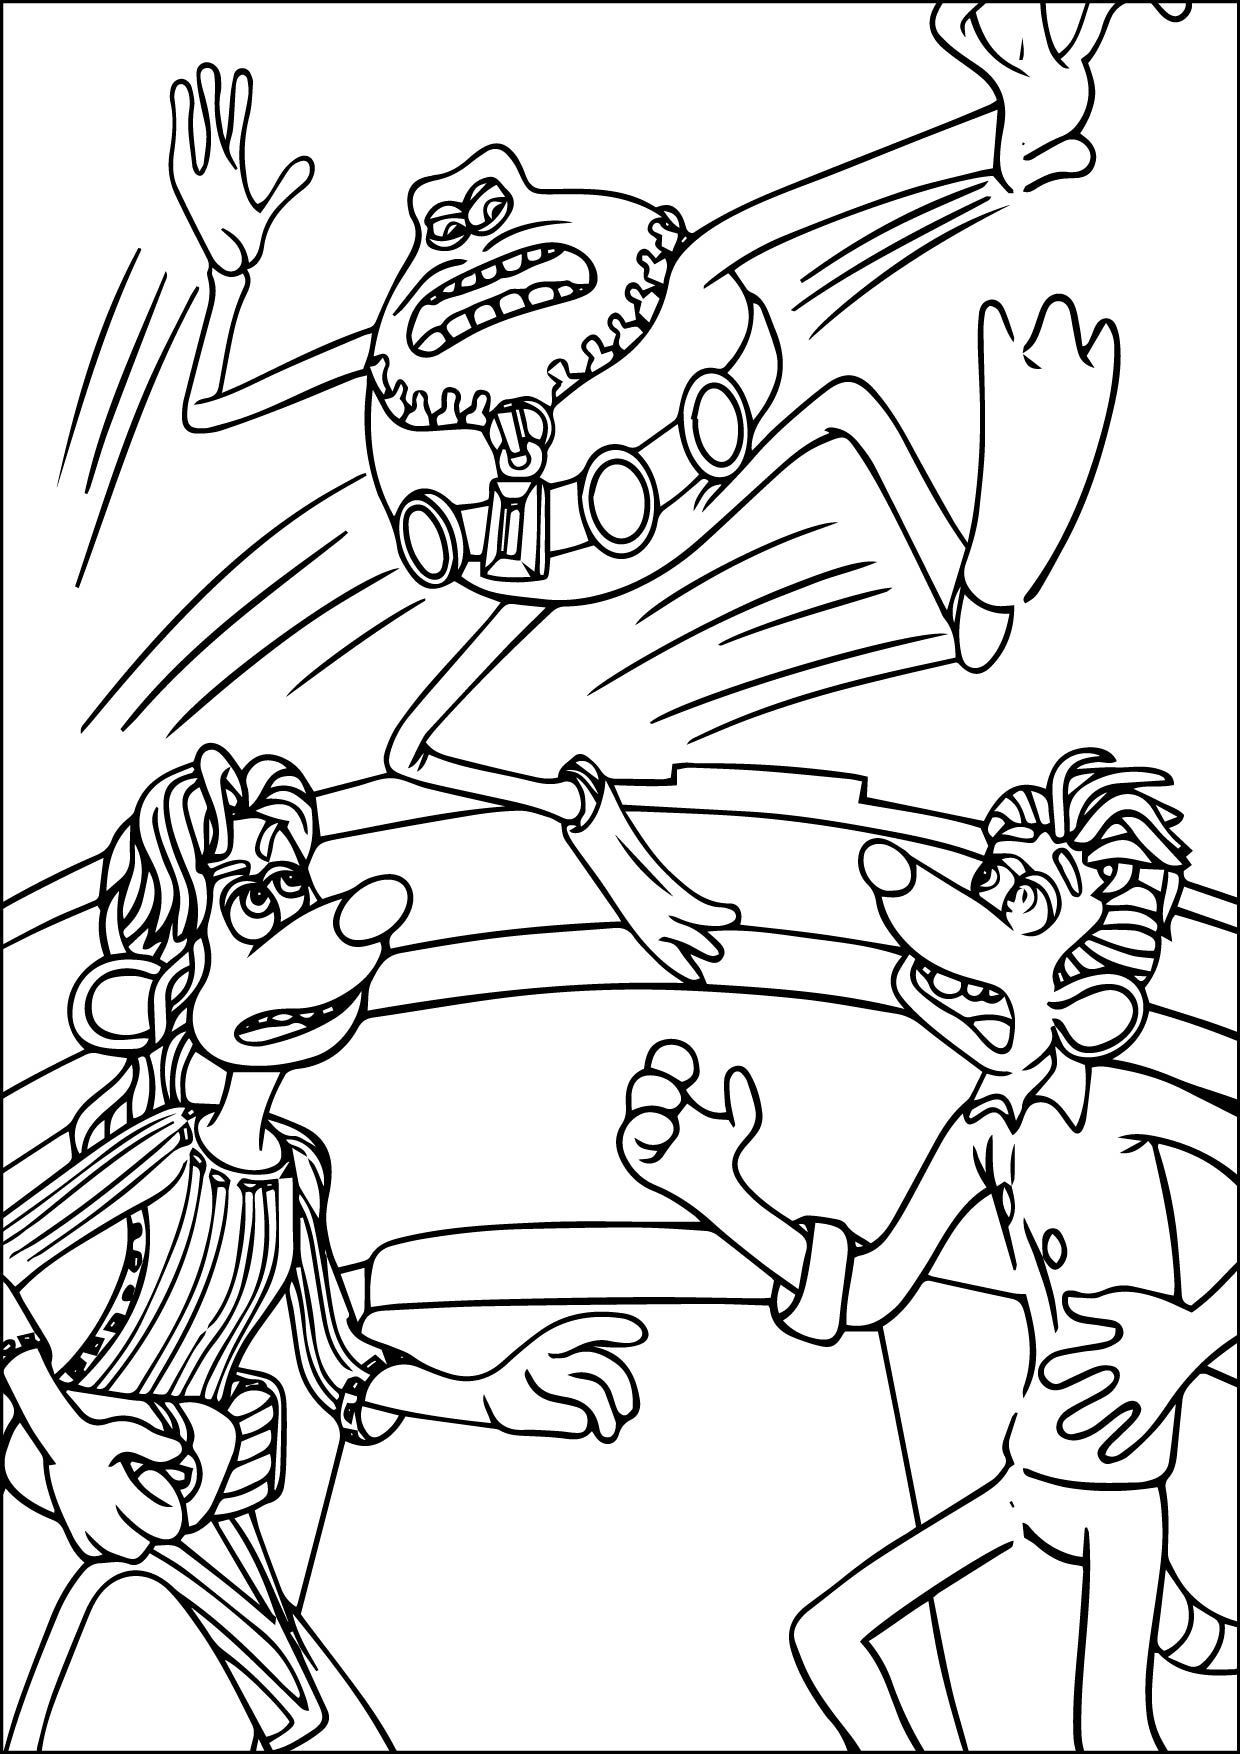 nice coloring page 11-10-2015_064108-01 Check more at http://www ...